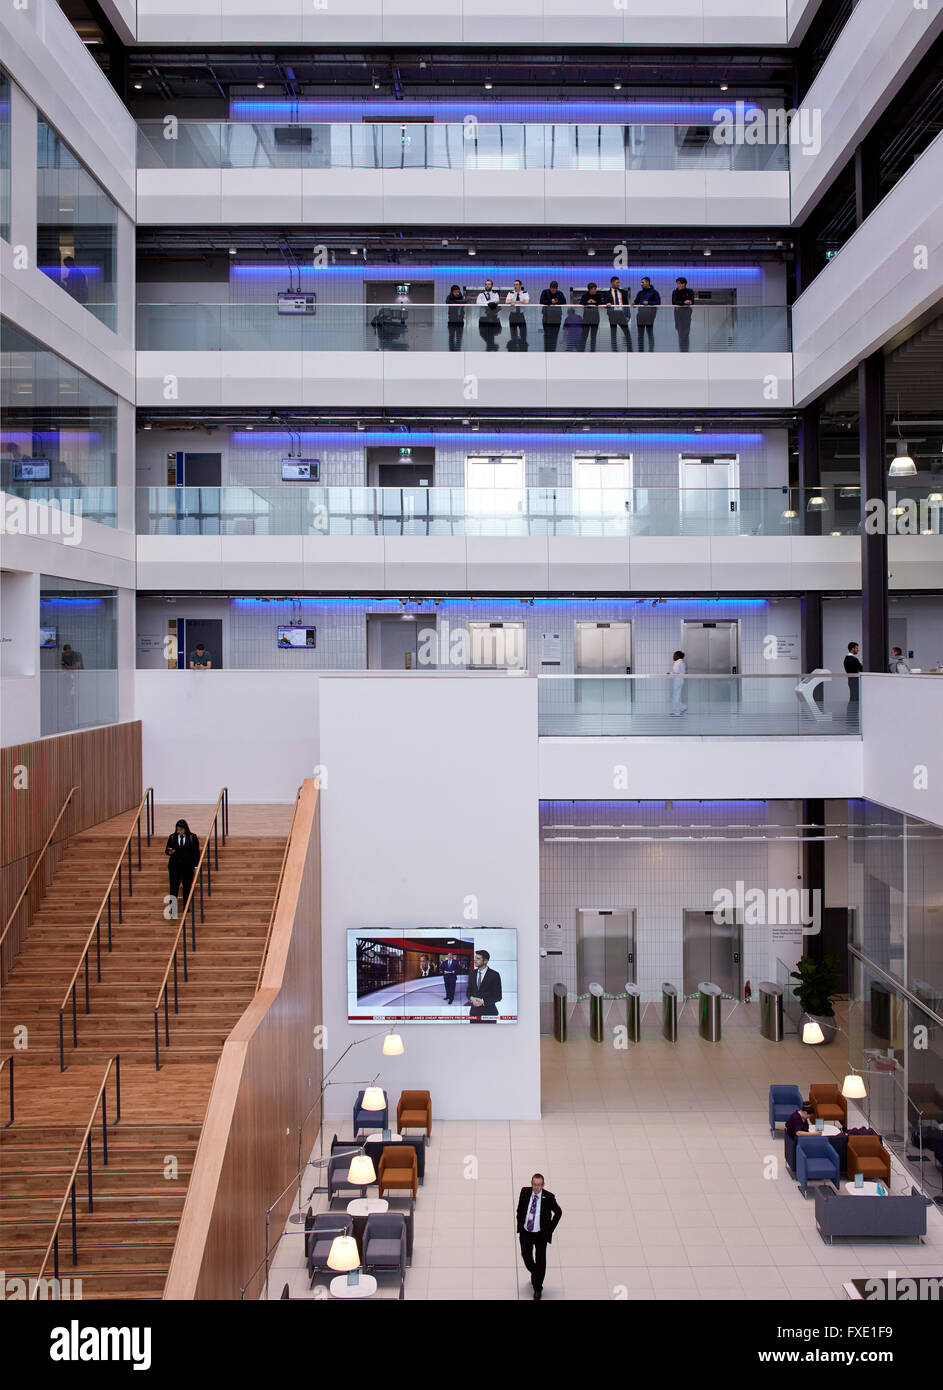 High Level Interior View Of Main Atrium Space City Glasgow College